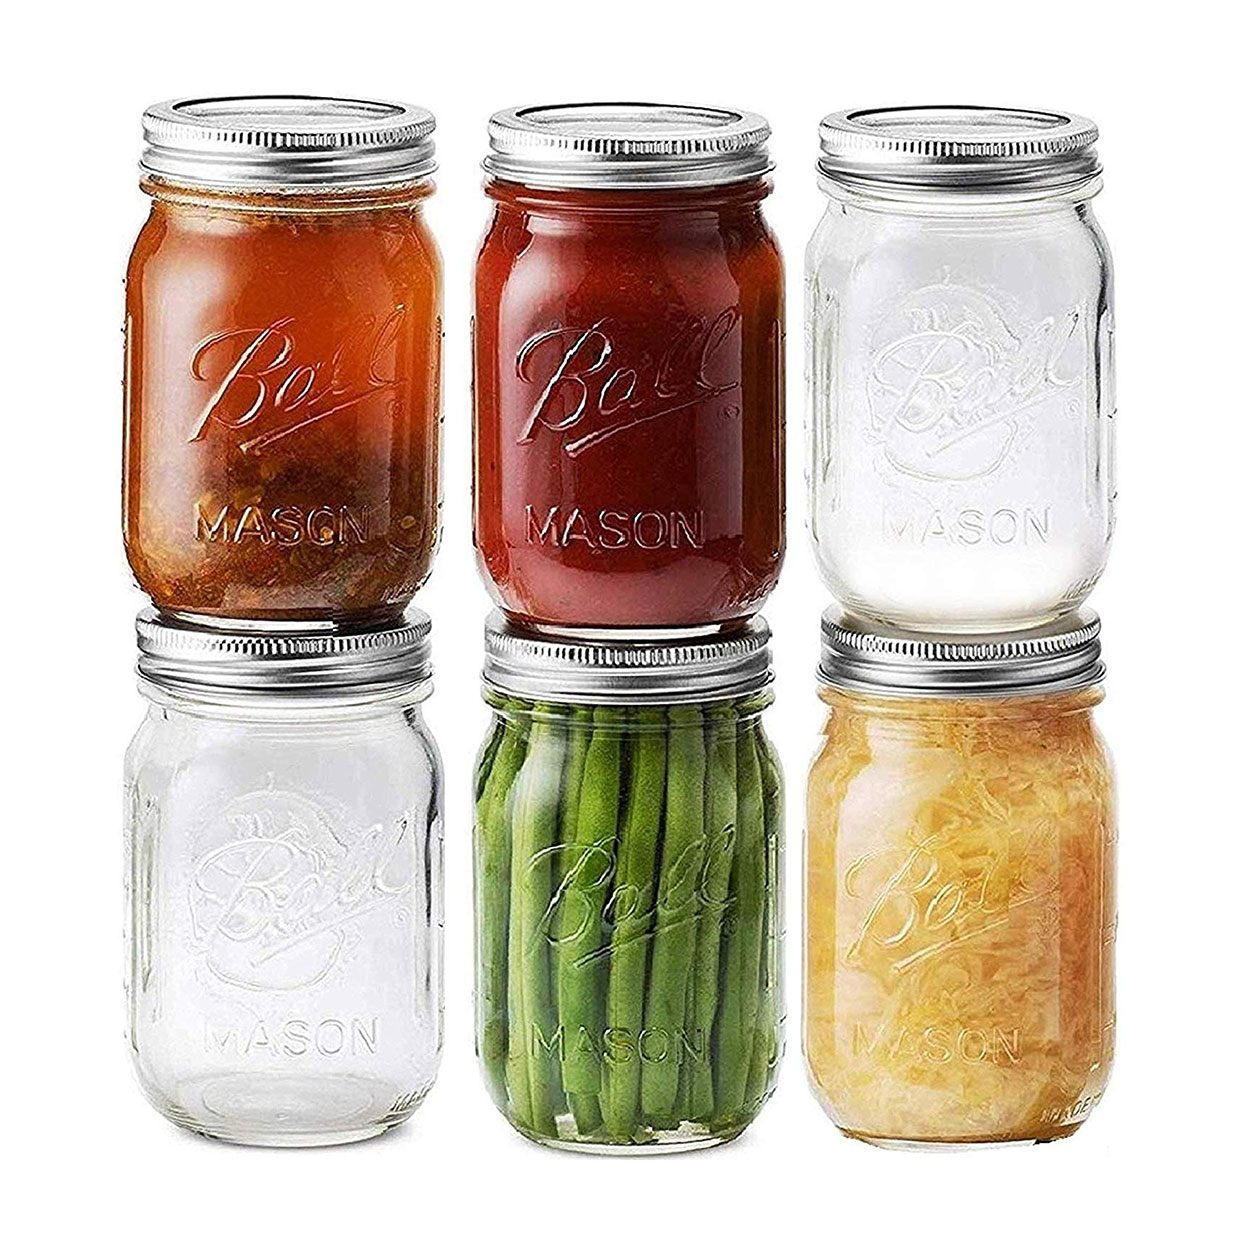 ball-mason-jars-meal-prep-containers